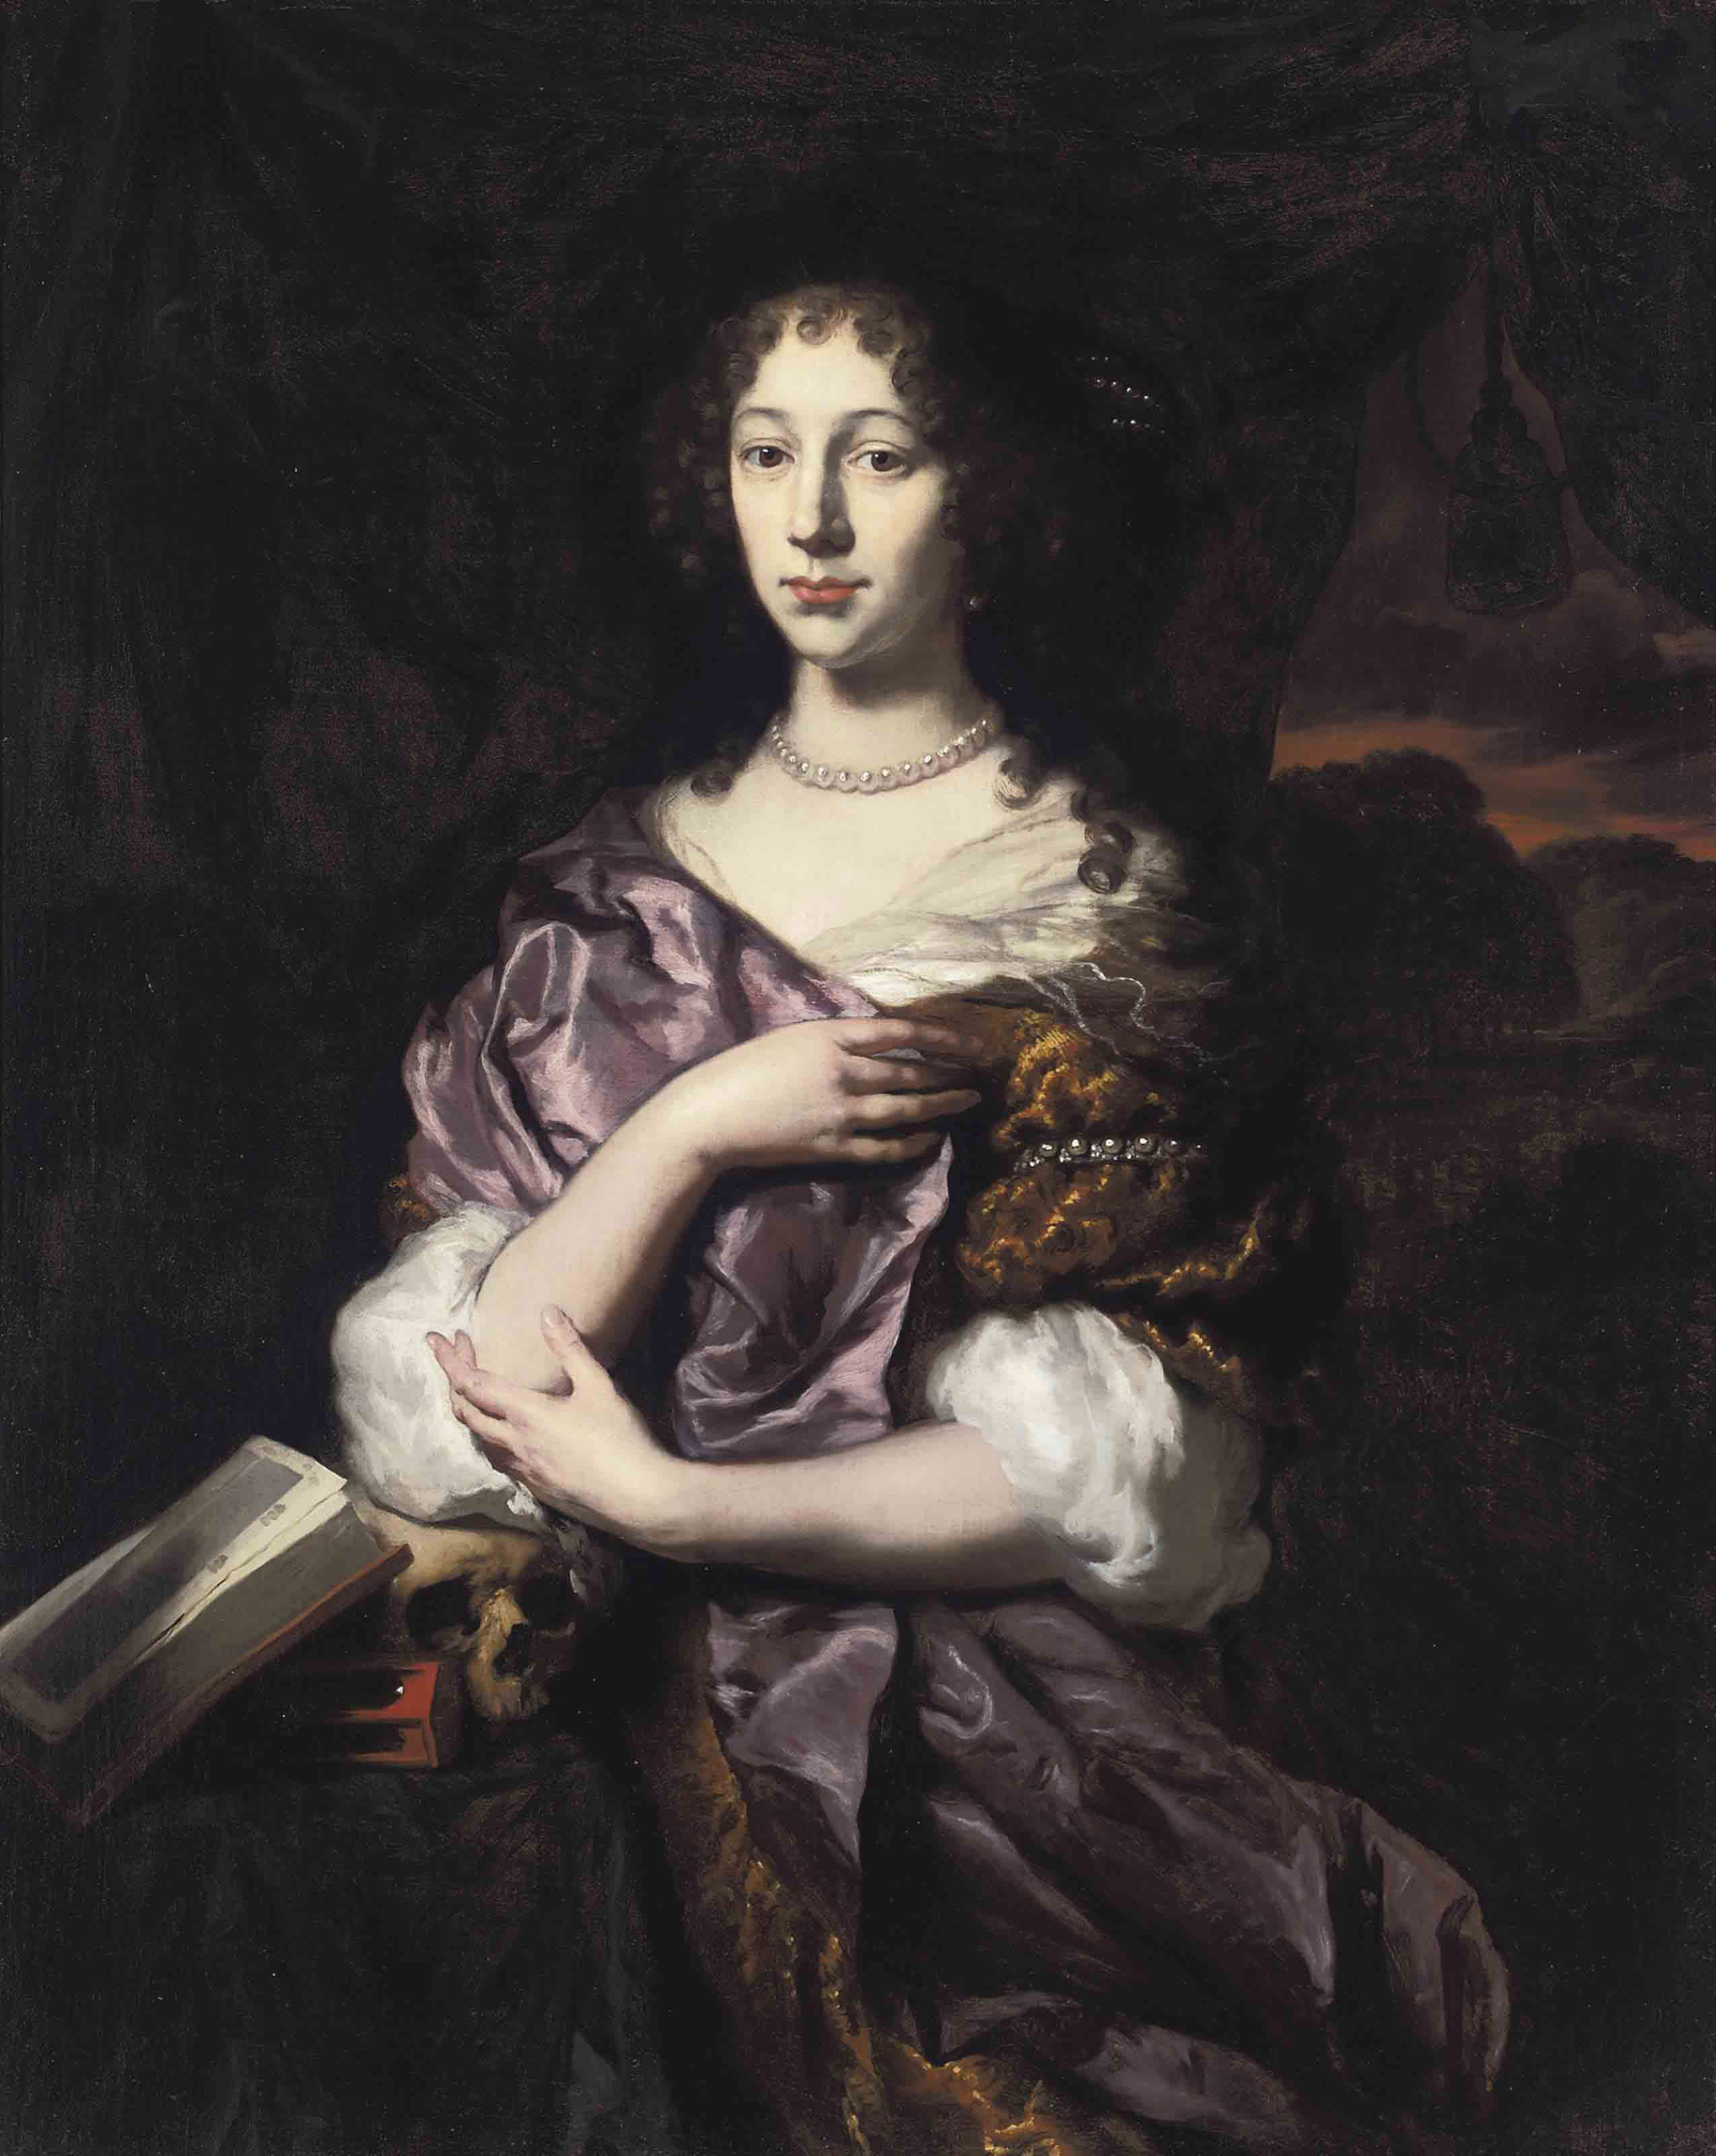 A vanitas portrait of a lady, three-quarter-length, in a gold dress and purple wrap, her elbow resting on a skull, with an hour-glass and an open book, in a landscape